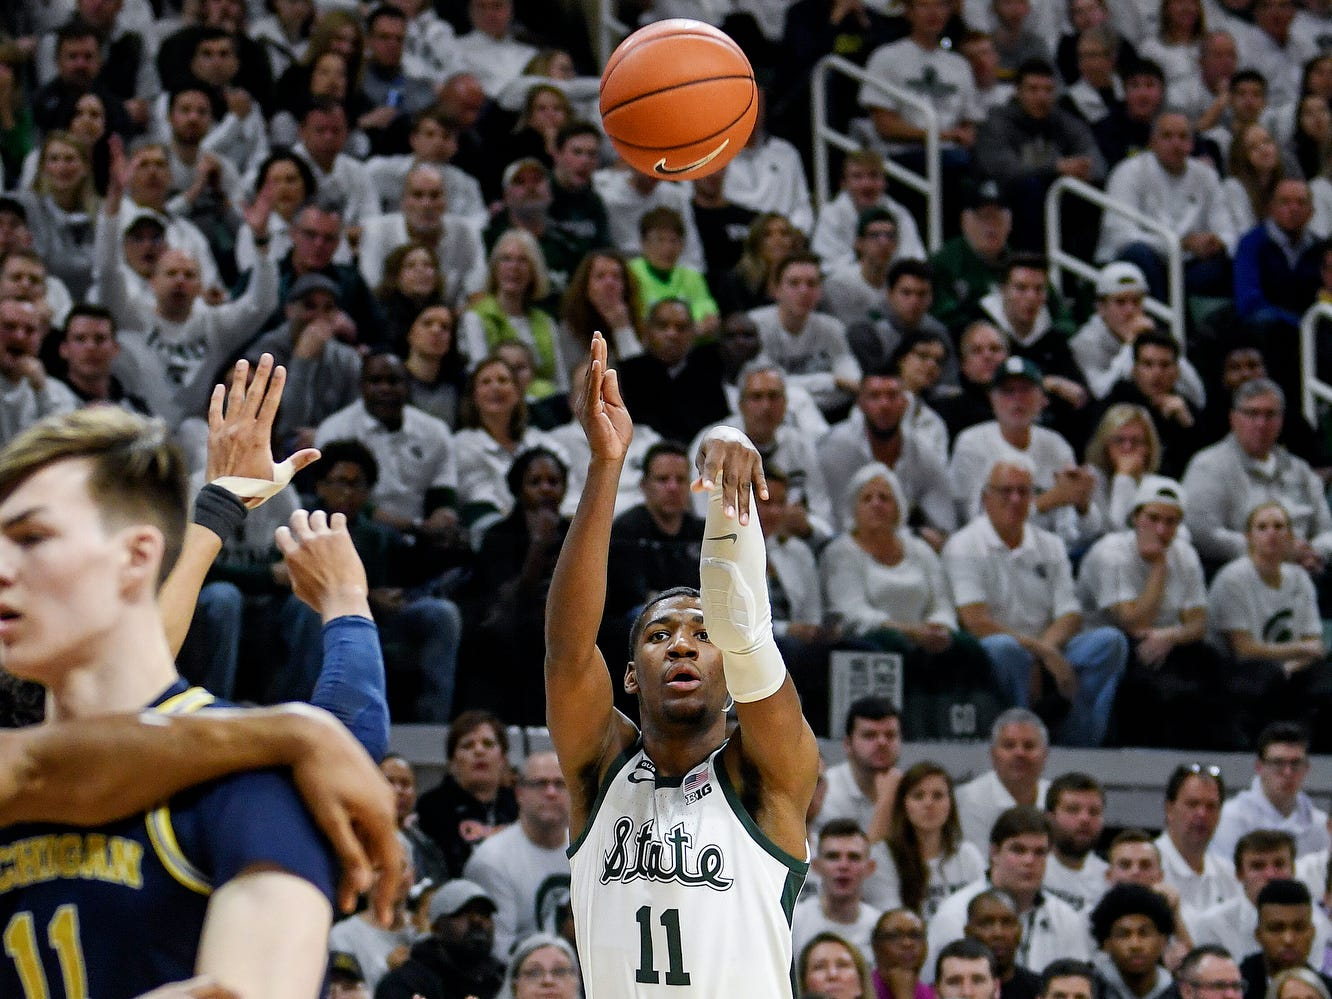 Michigan State's Aaron Henry makes a 3-pointer during the first half of the Spartans game against Michigan on Saturday, March 9, 2019, at the Breslin Center in East Lansing.